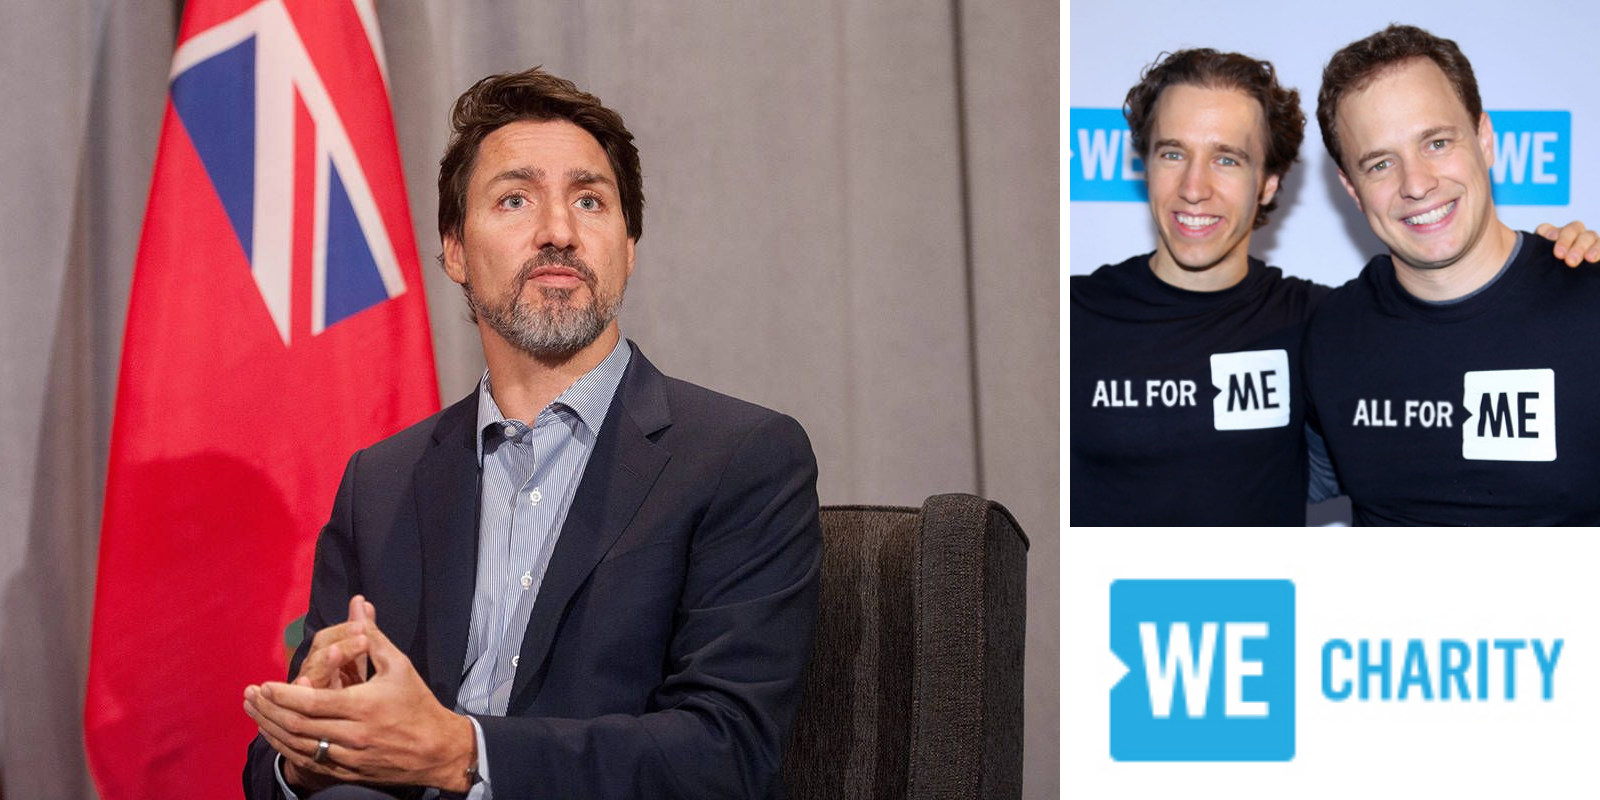 WE accused of giving personal data to Trudeau Liberals before 2015 election